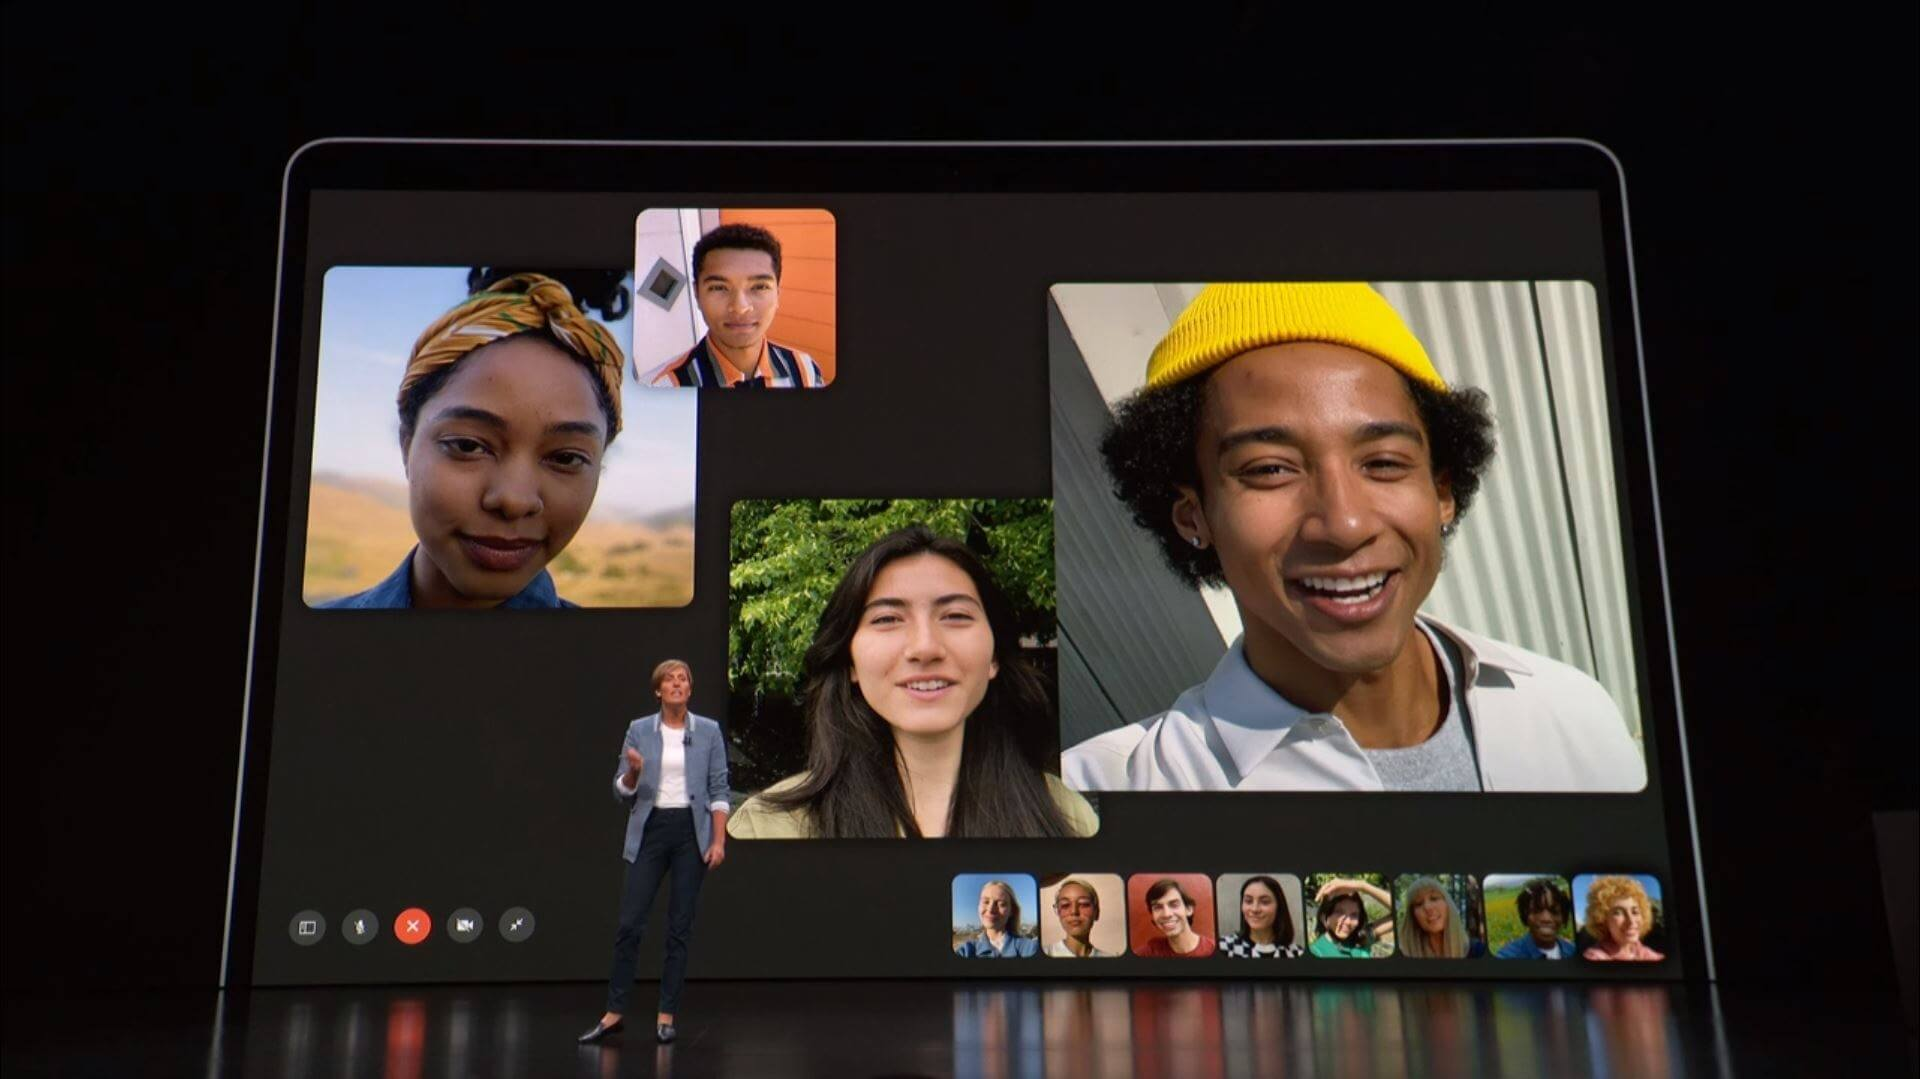 Apple gives education grant to United States teen for FaceTime bug find